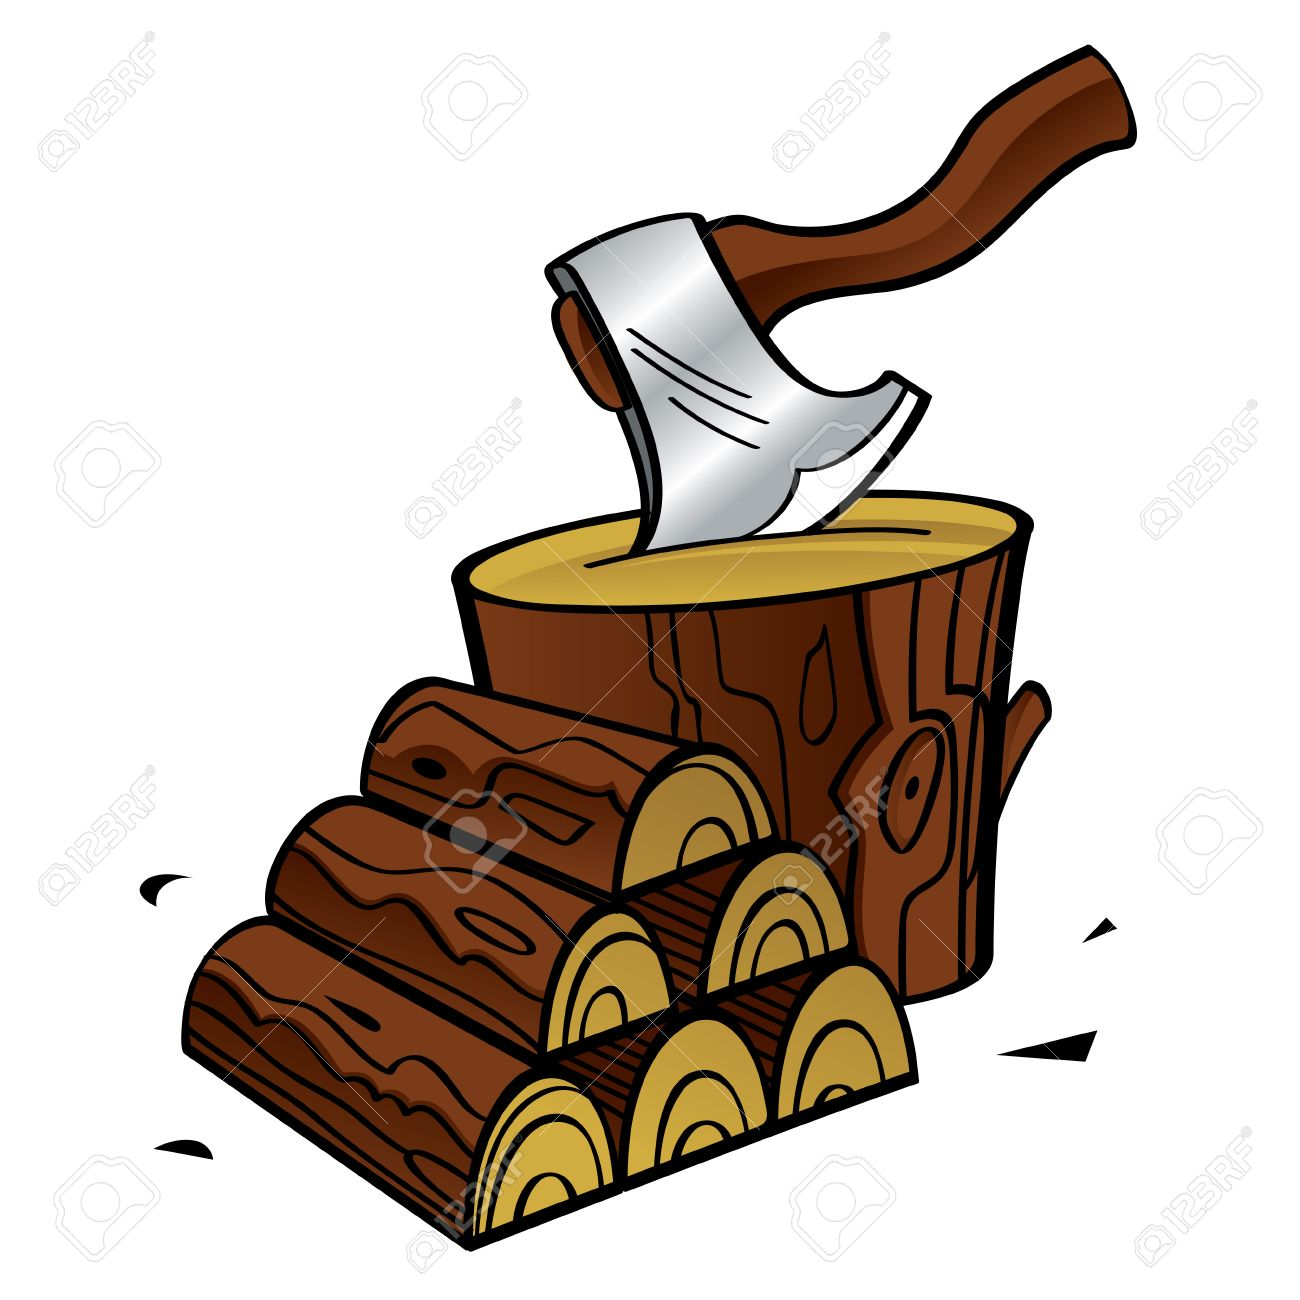 Ax and wood clipart picture library library Ax clipart chop wood - 147 transparent clip arts, images and ... picture library library